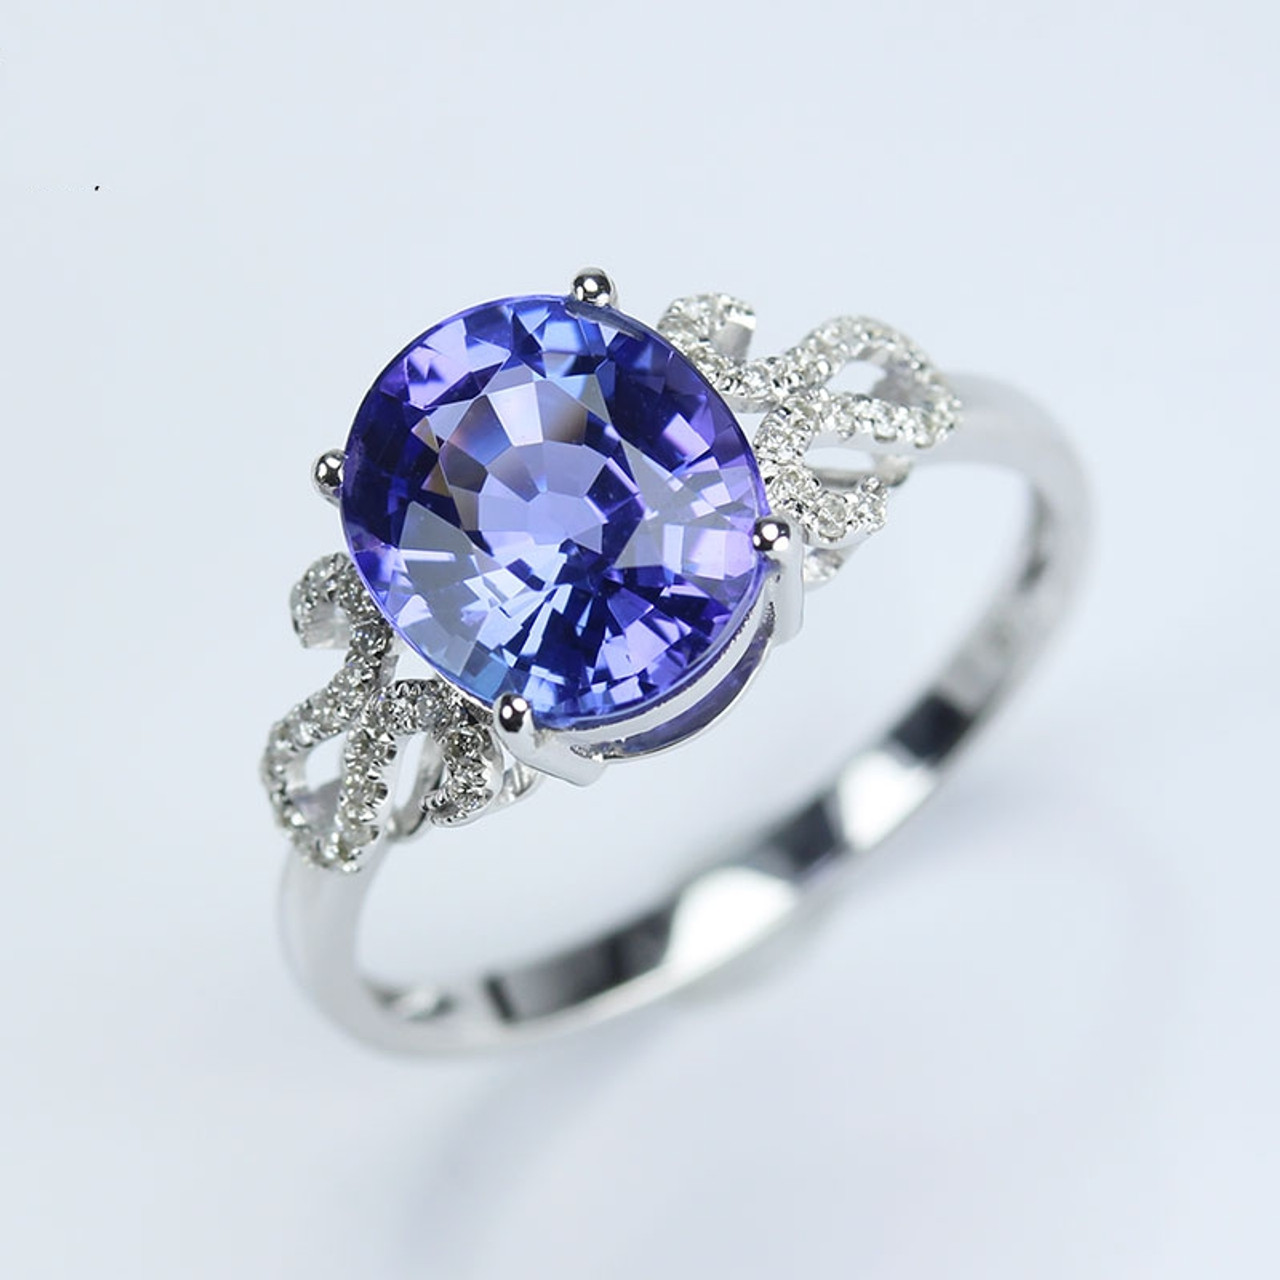 the grading tanzanite department pinterest pin ice authenticity quality